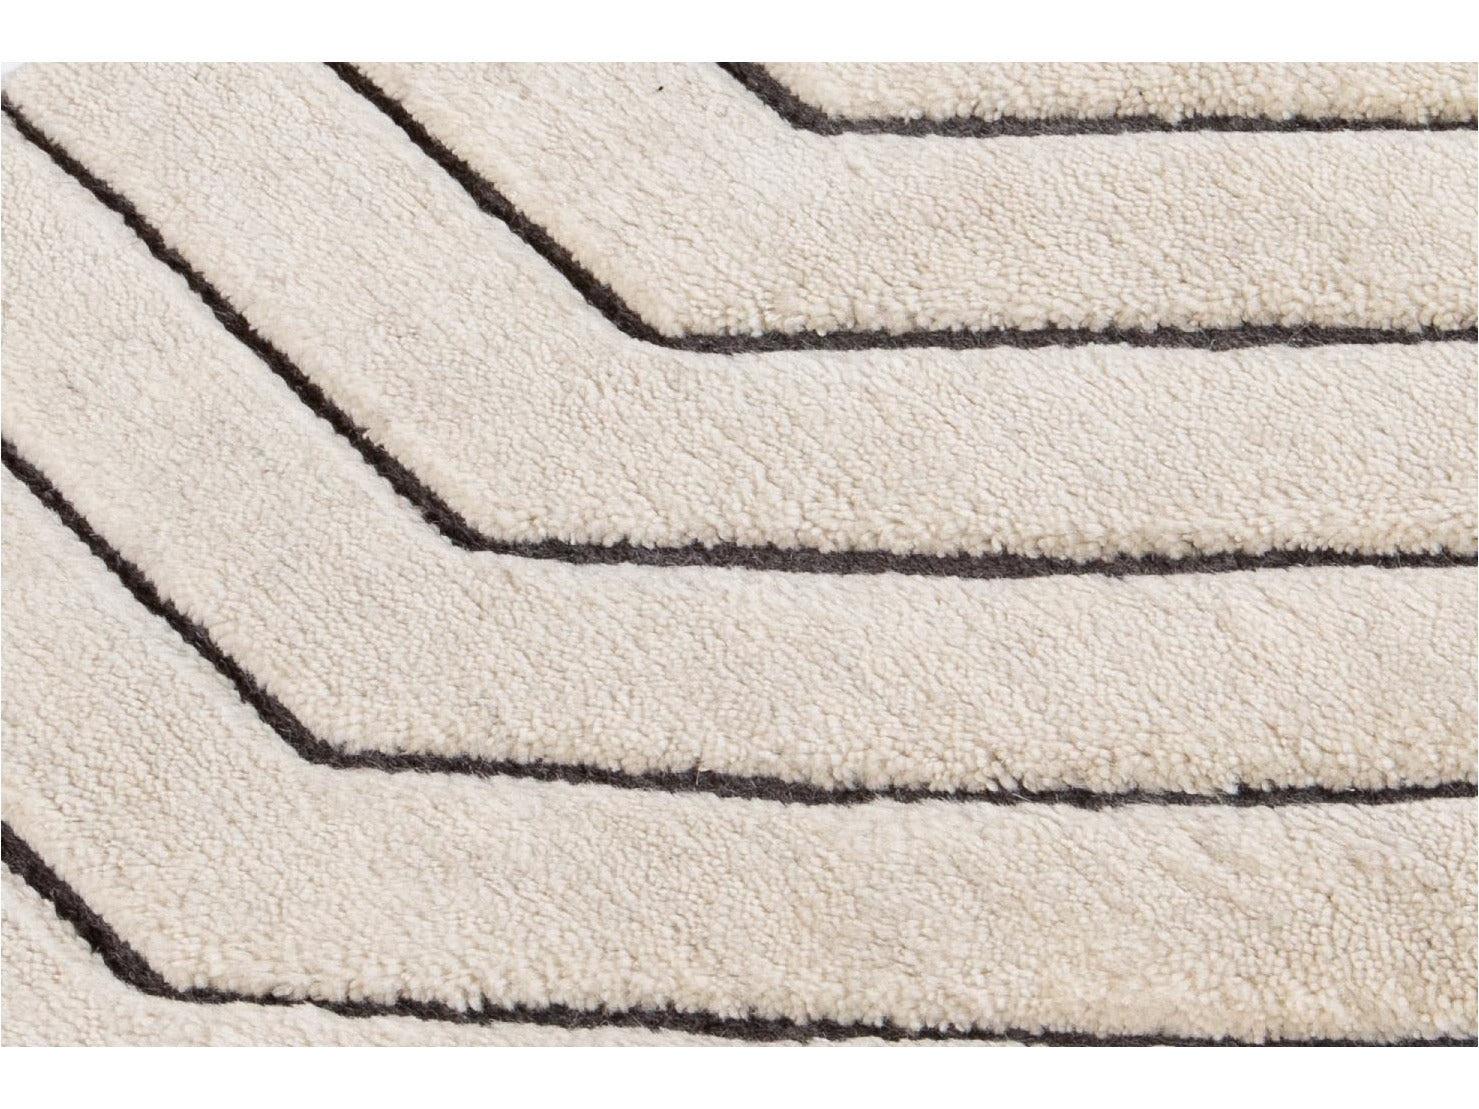 Ivory Textured Wool Custom Rug